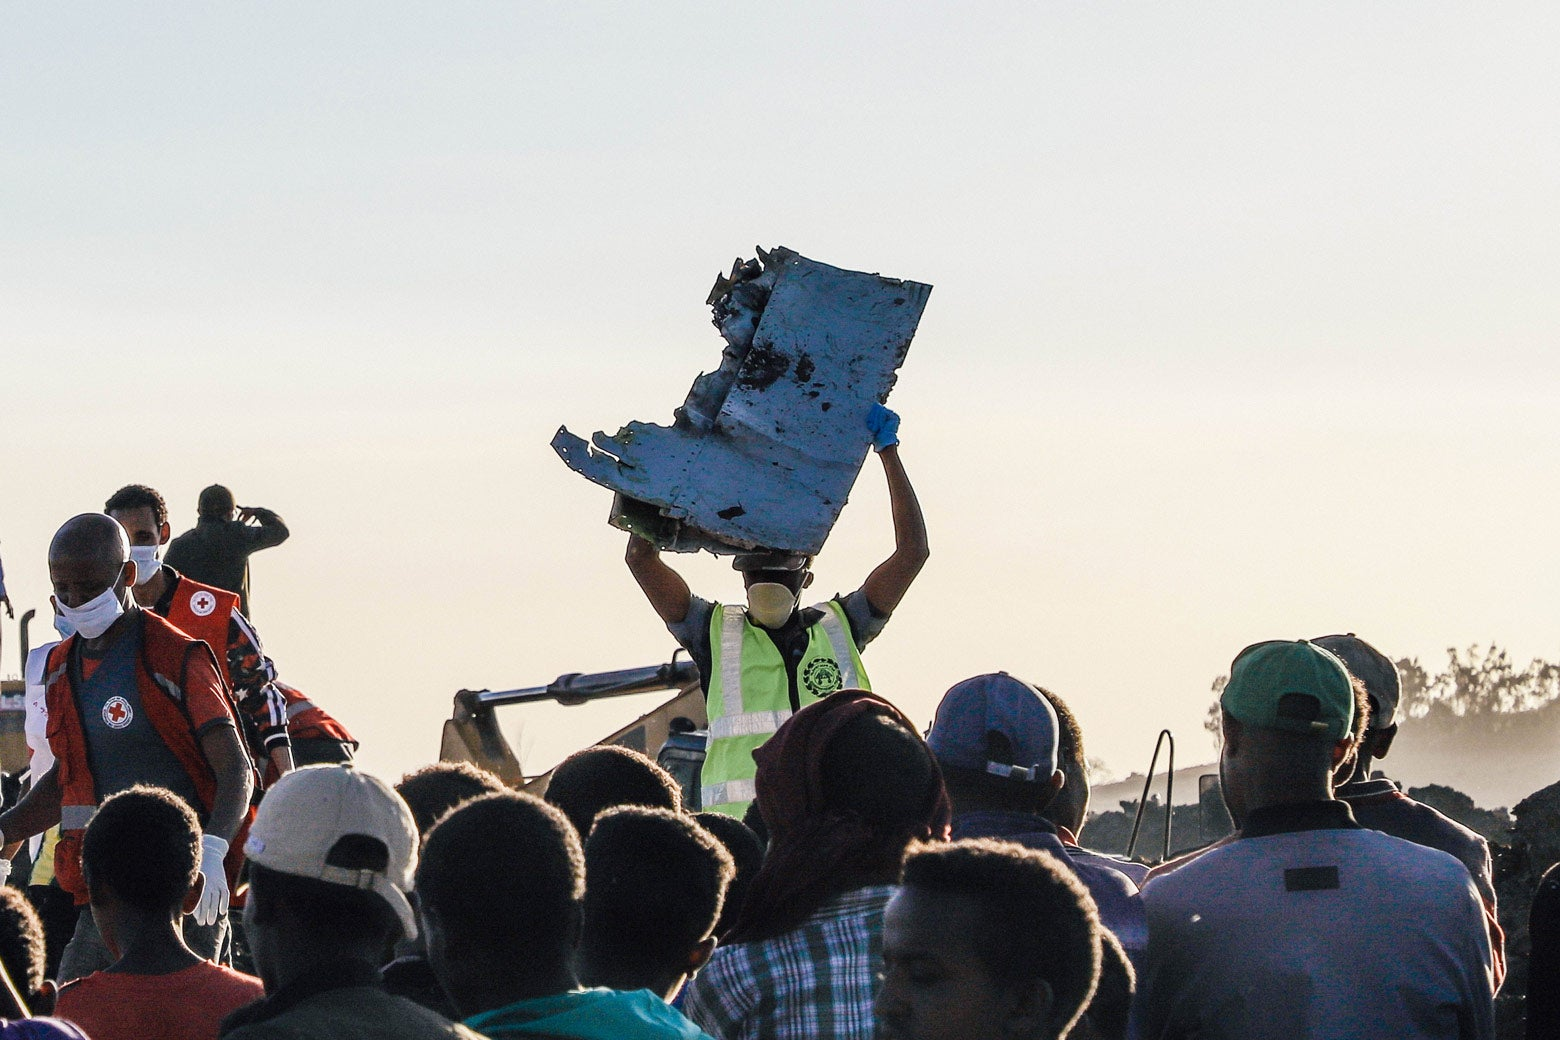 A man carries a piece of debris on his head at the crash site of a Nairobi-bound Ethiopian Airlines flight.